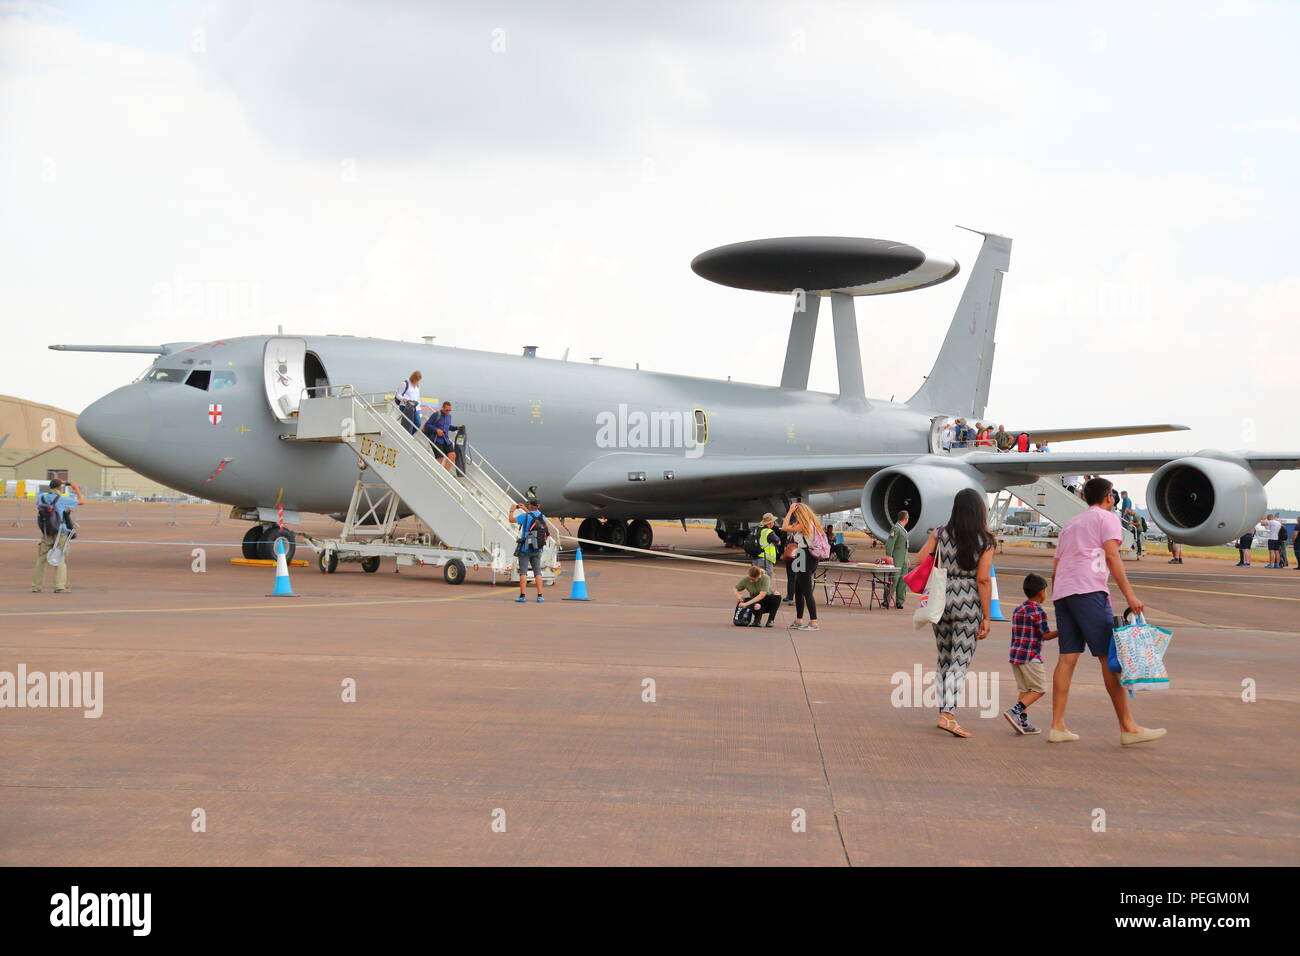 An RAF Boeing E-3D Sentry AWACS plane at the RIAT 2018 at RAF Fairford, UK - Stock Image